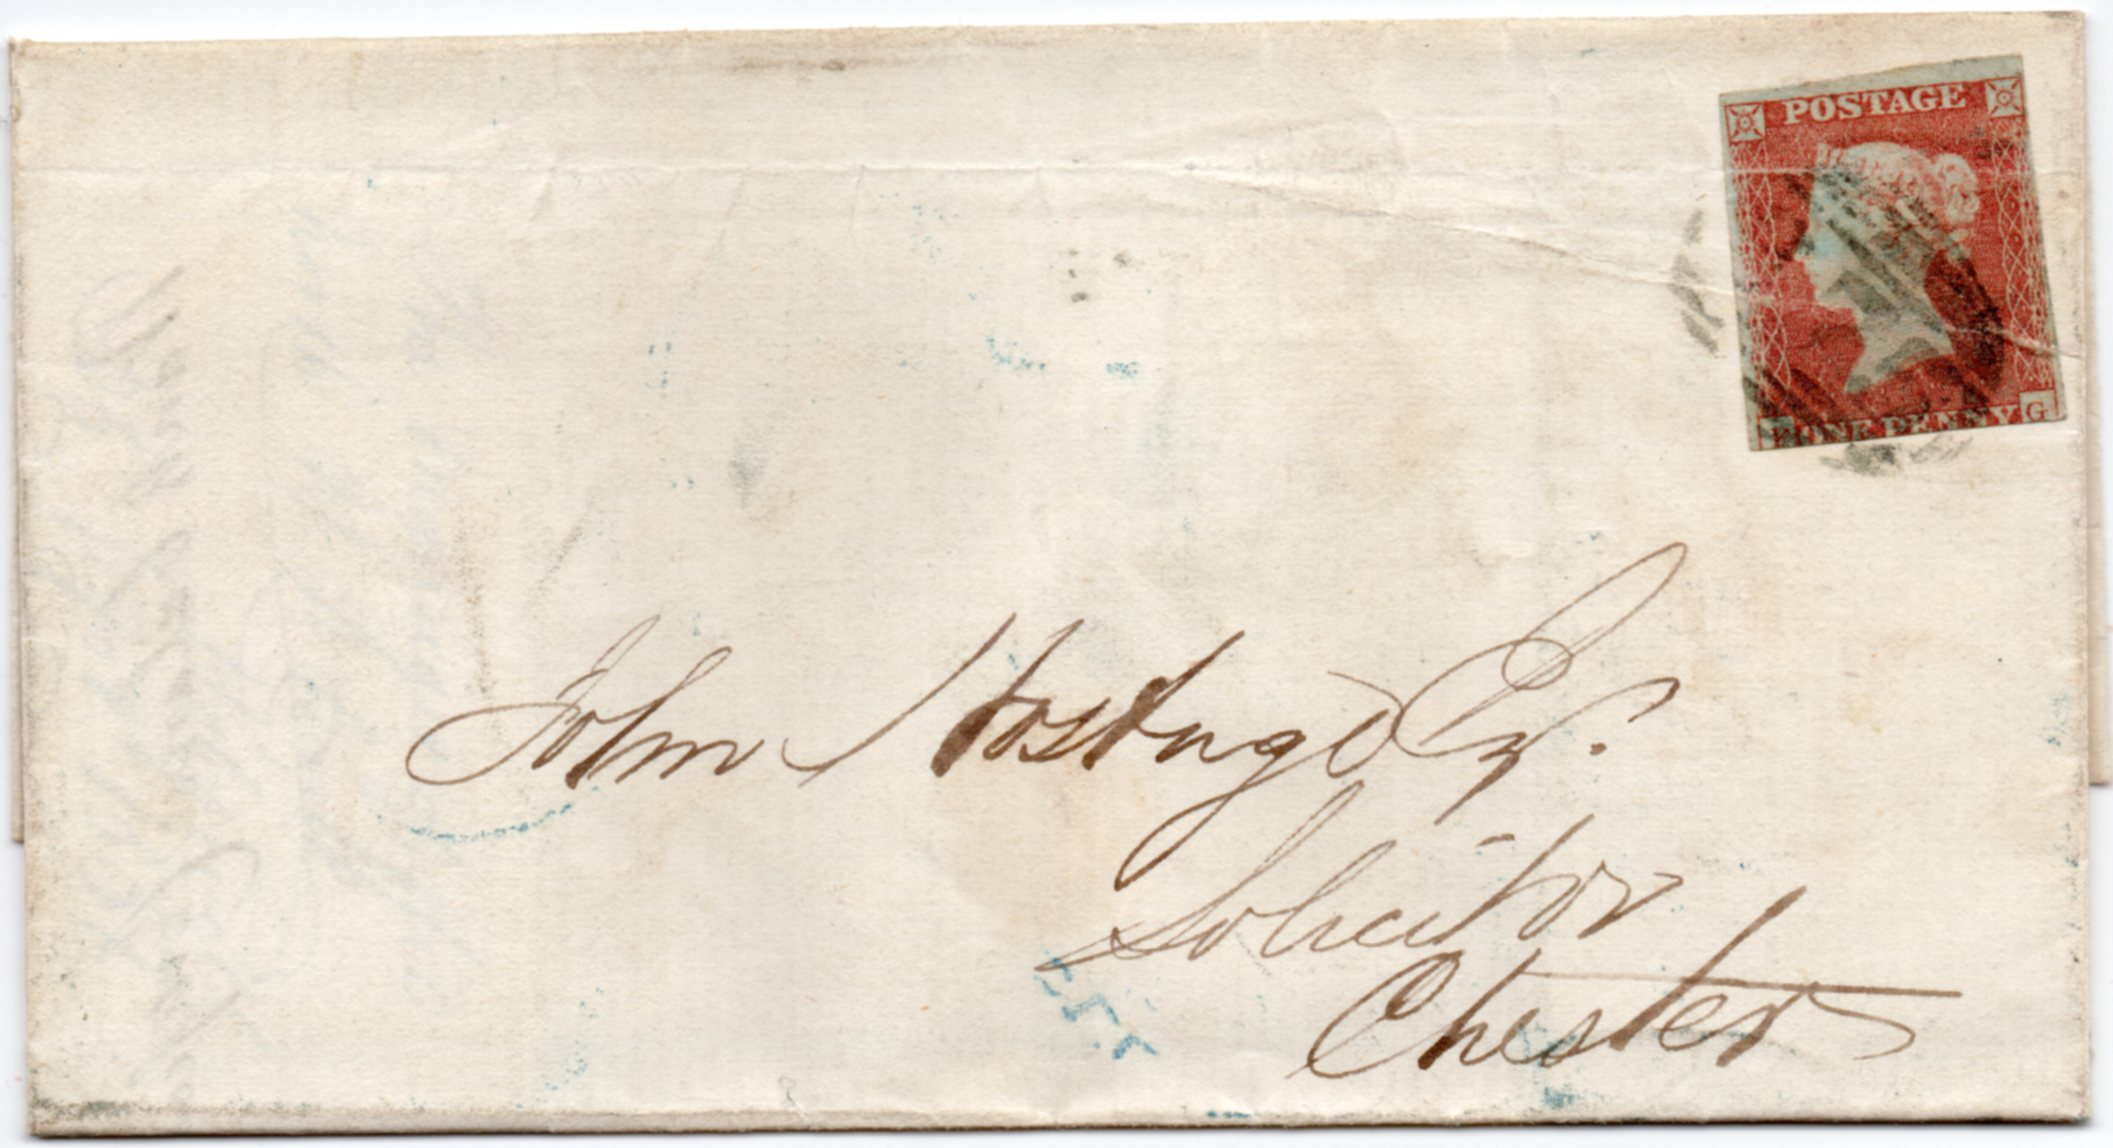 1851 1d Red Imperf Cover Dull Blue-green shade Cancellation